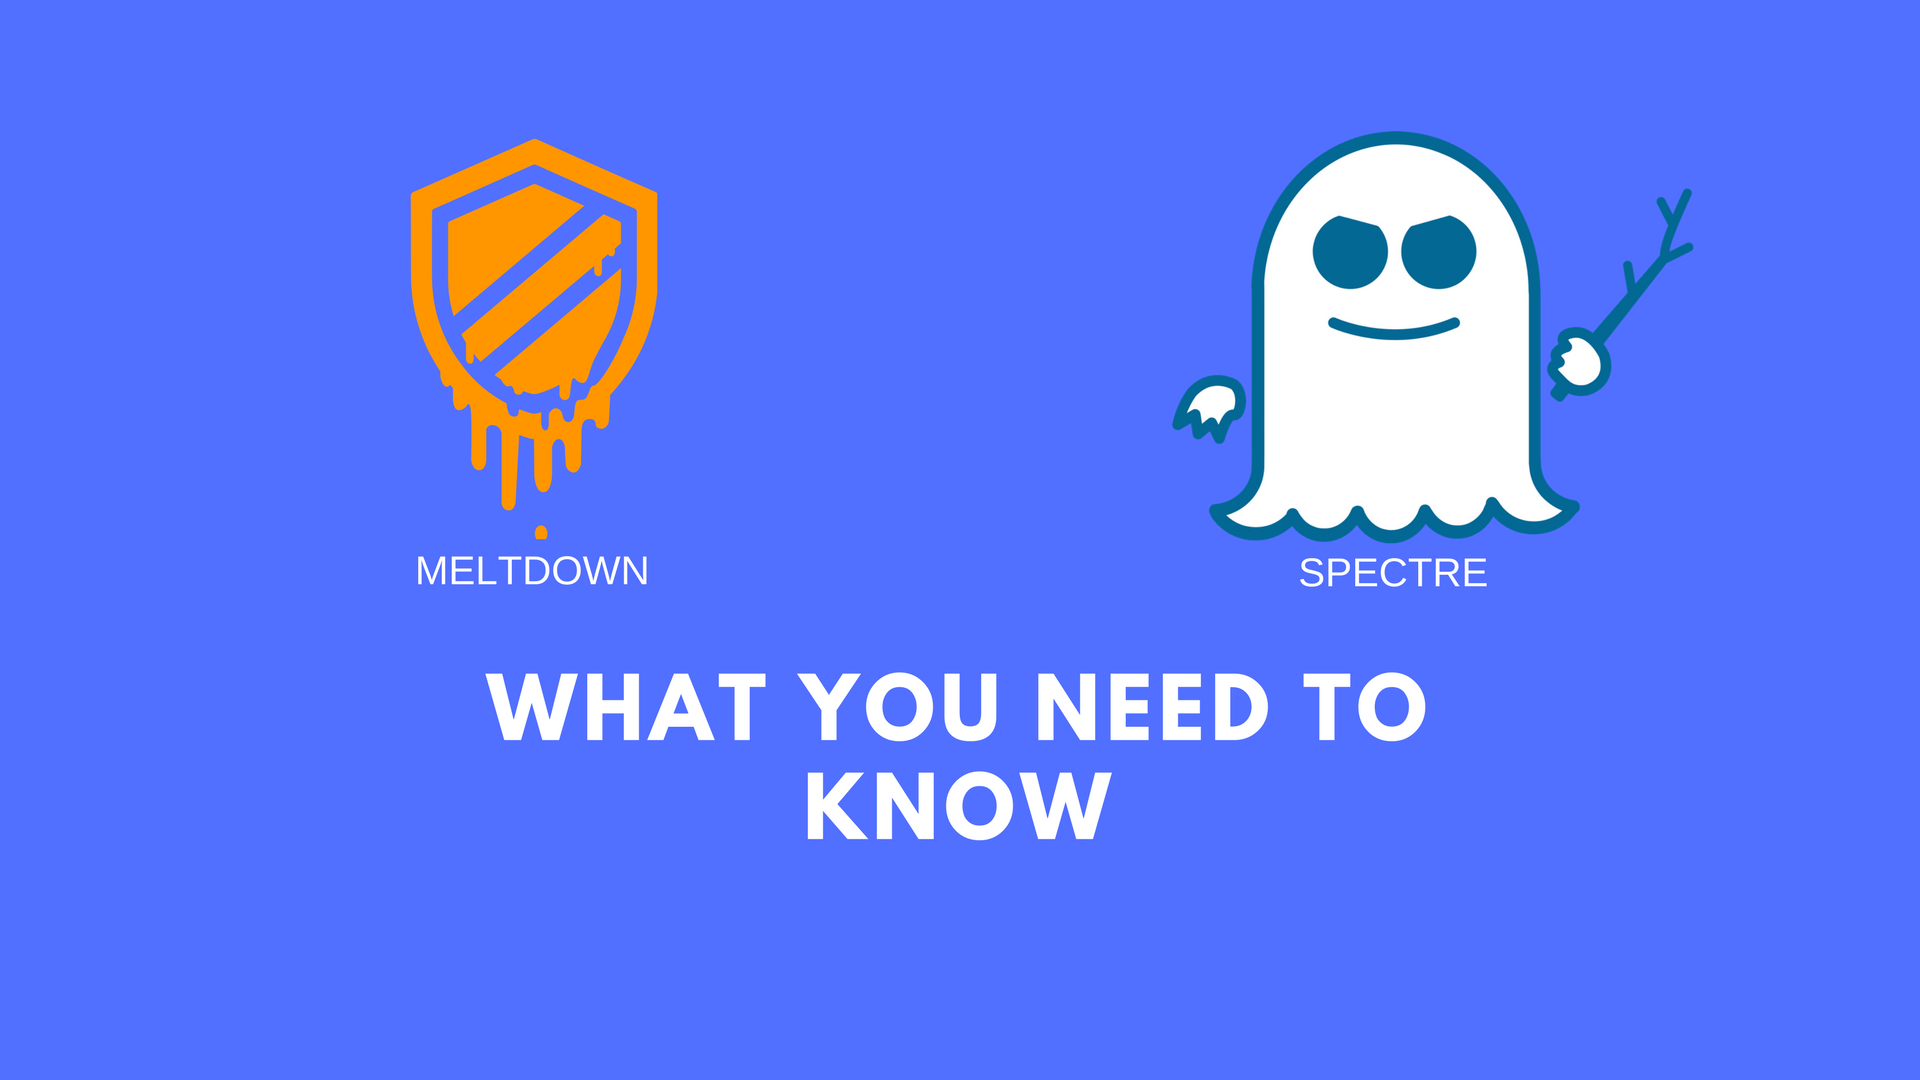 Meltdown and Spectre Vulnerabilities - Quick Overview